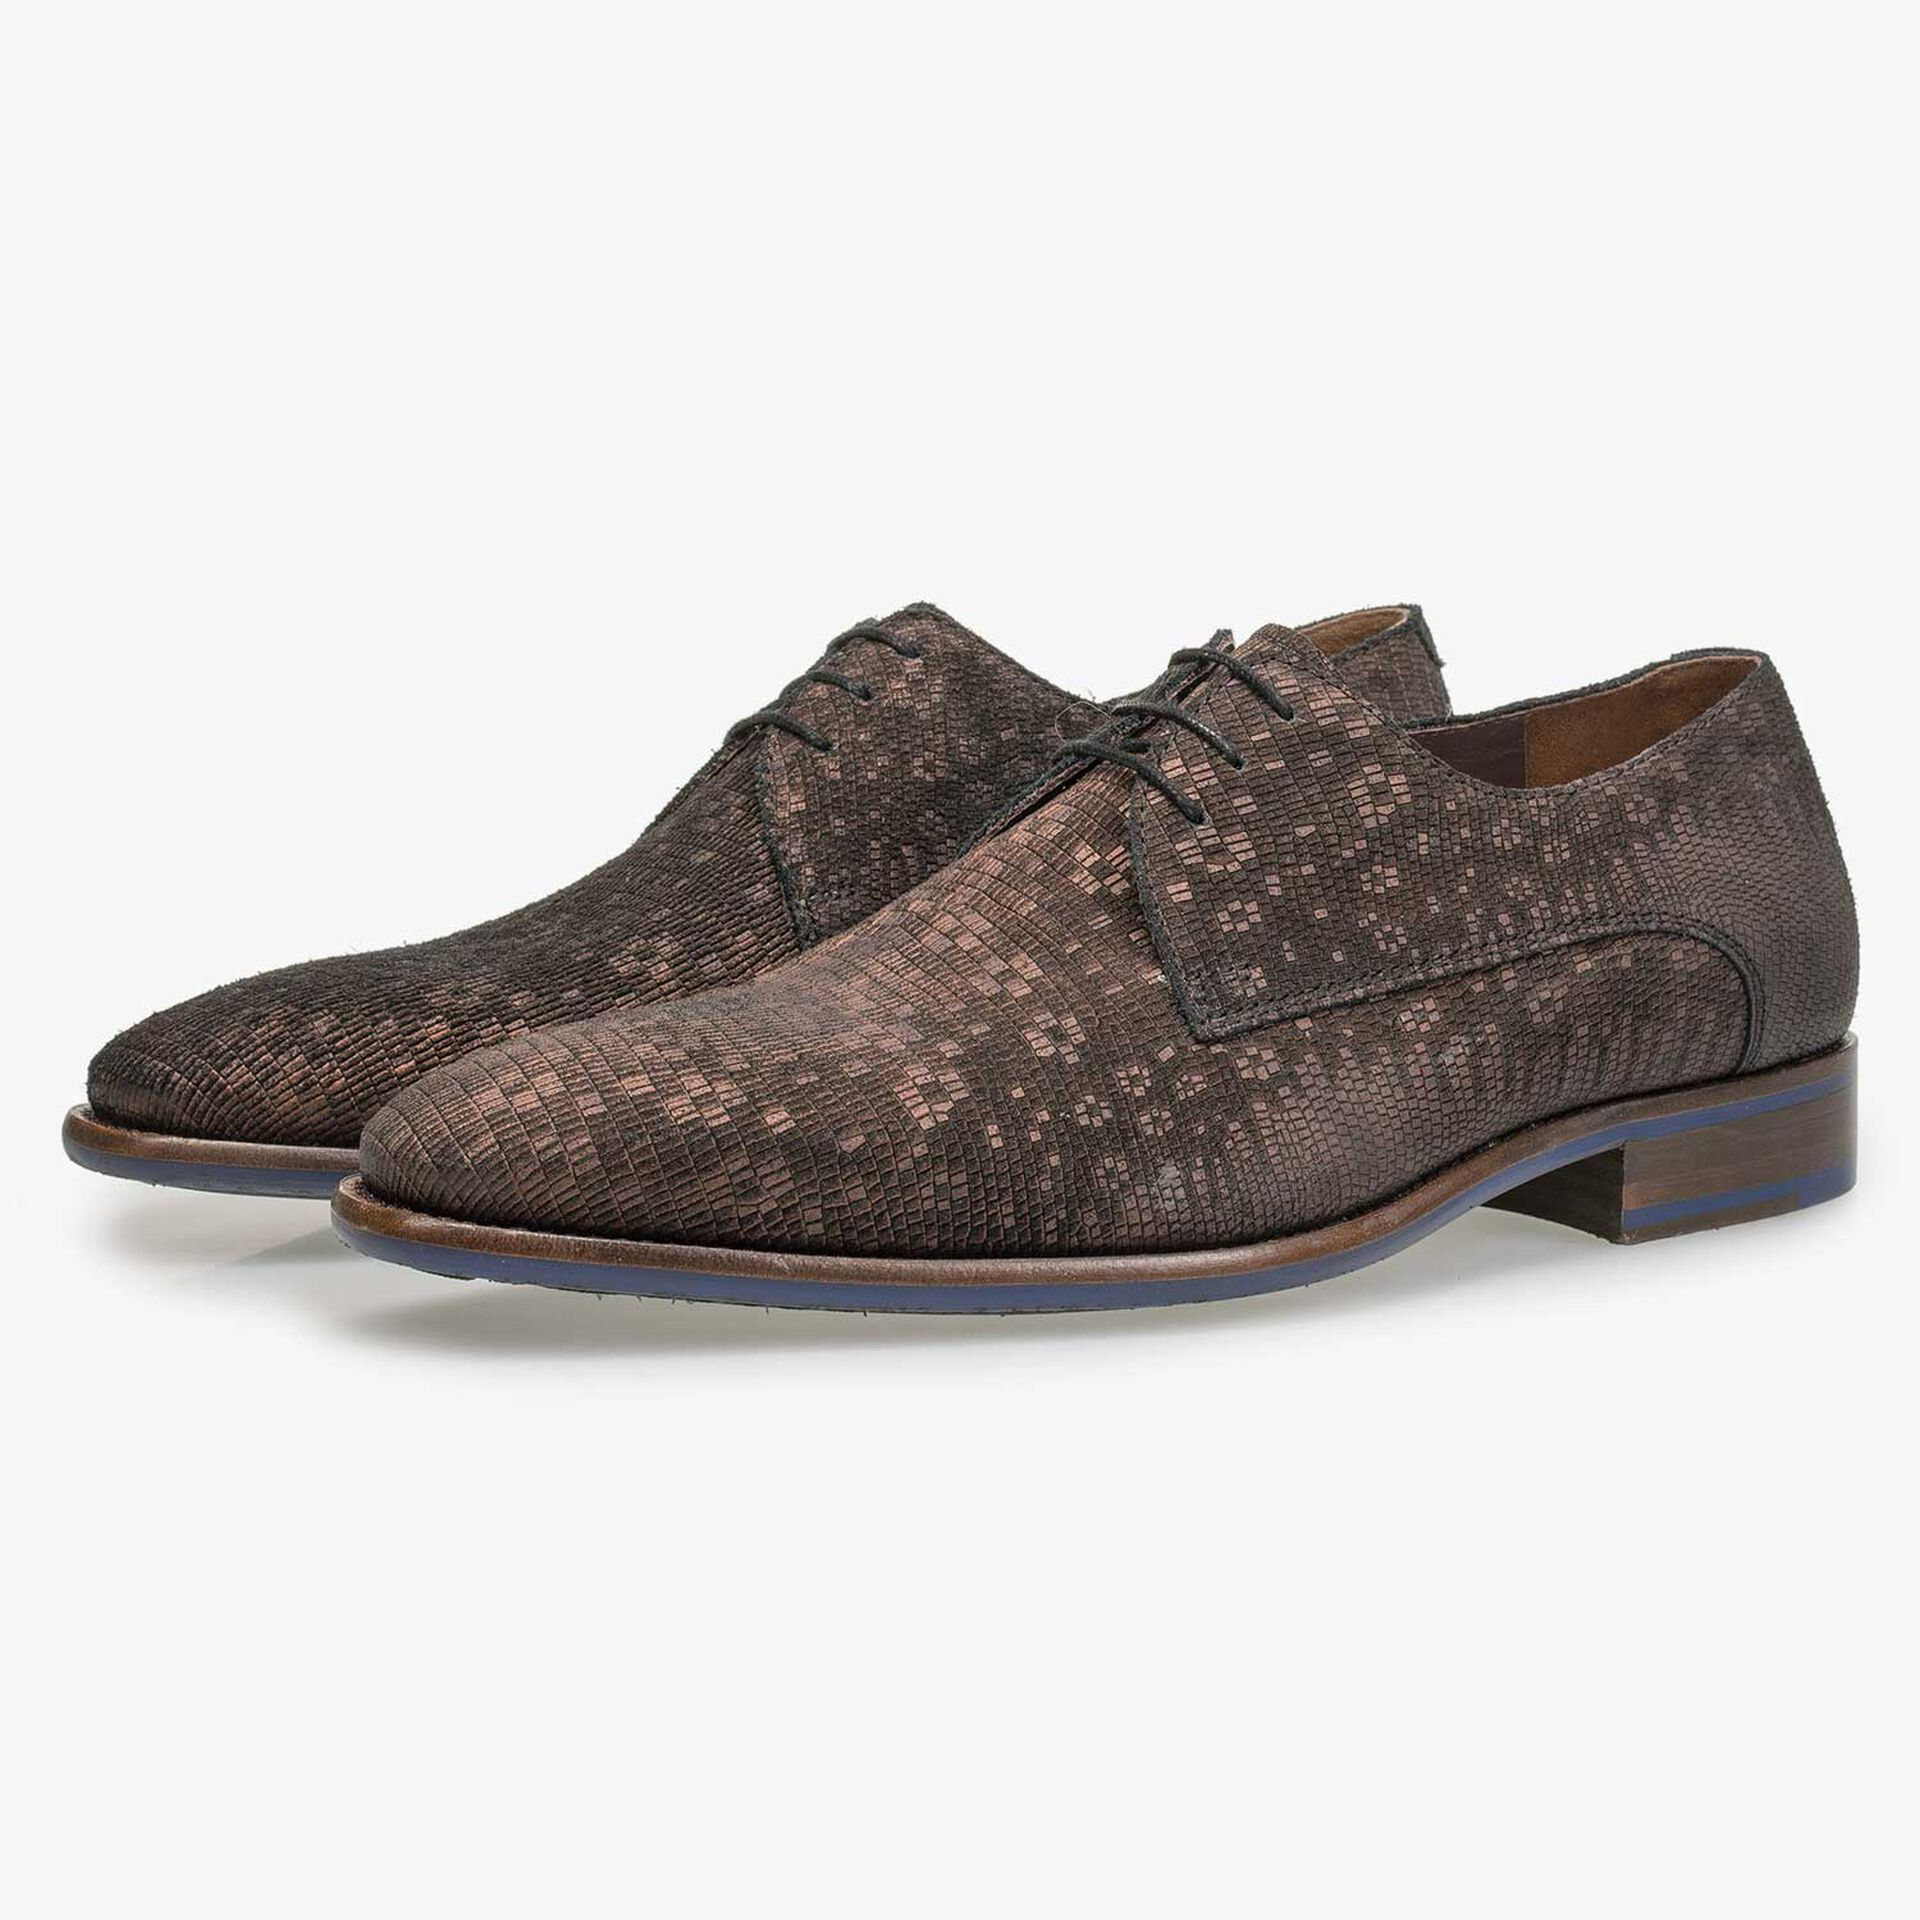 Brown lace shoe with structural pattern